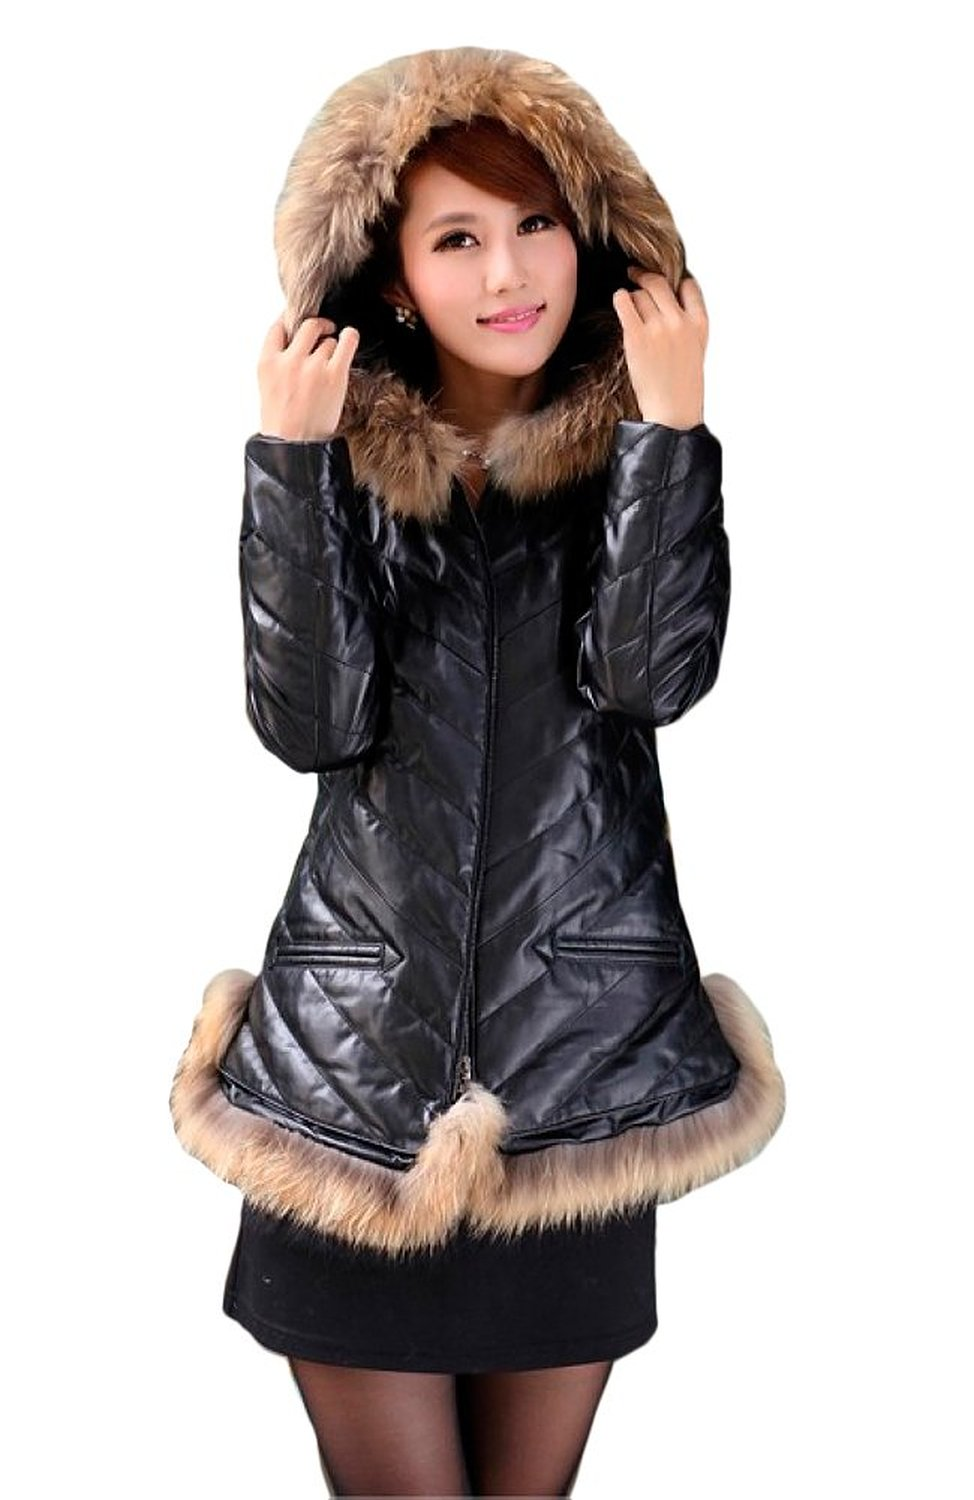 Queenshiny long women's 100% real sheep leather down coat with raccoon trim with hood at amazon women's coats shop